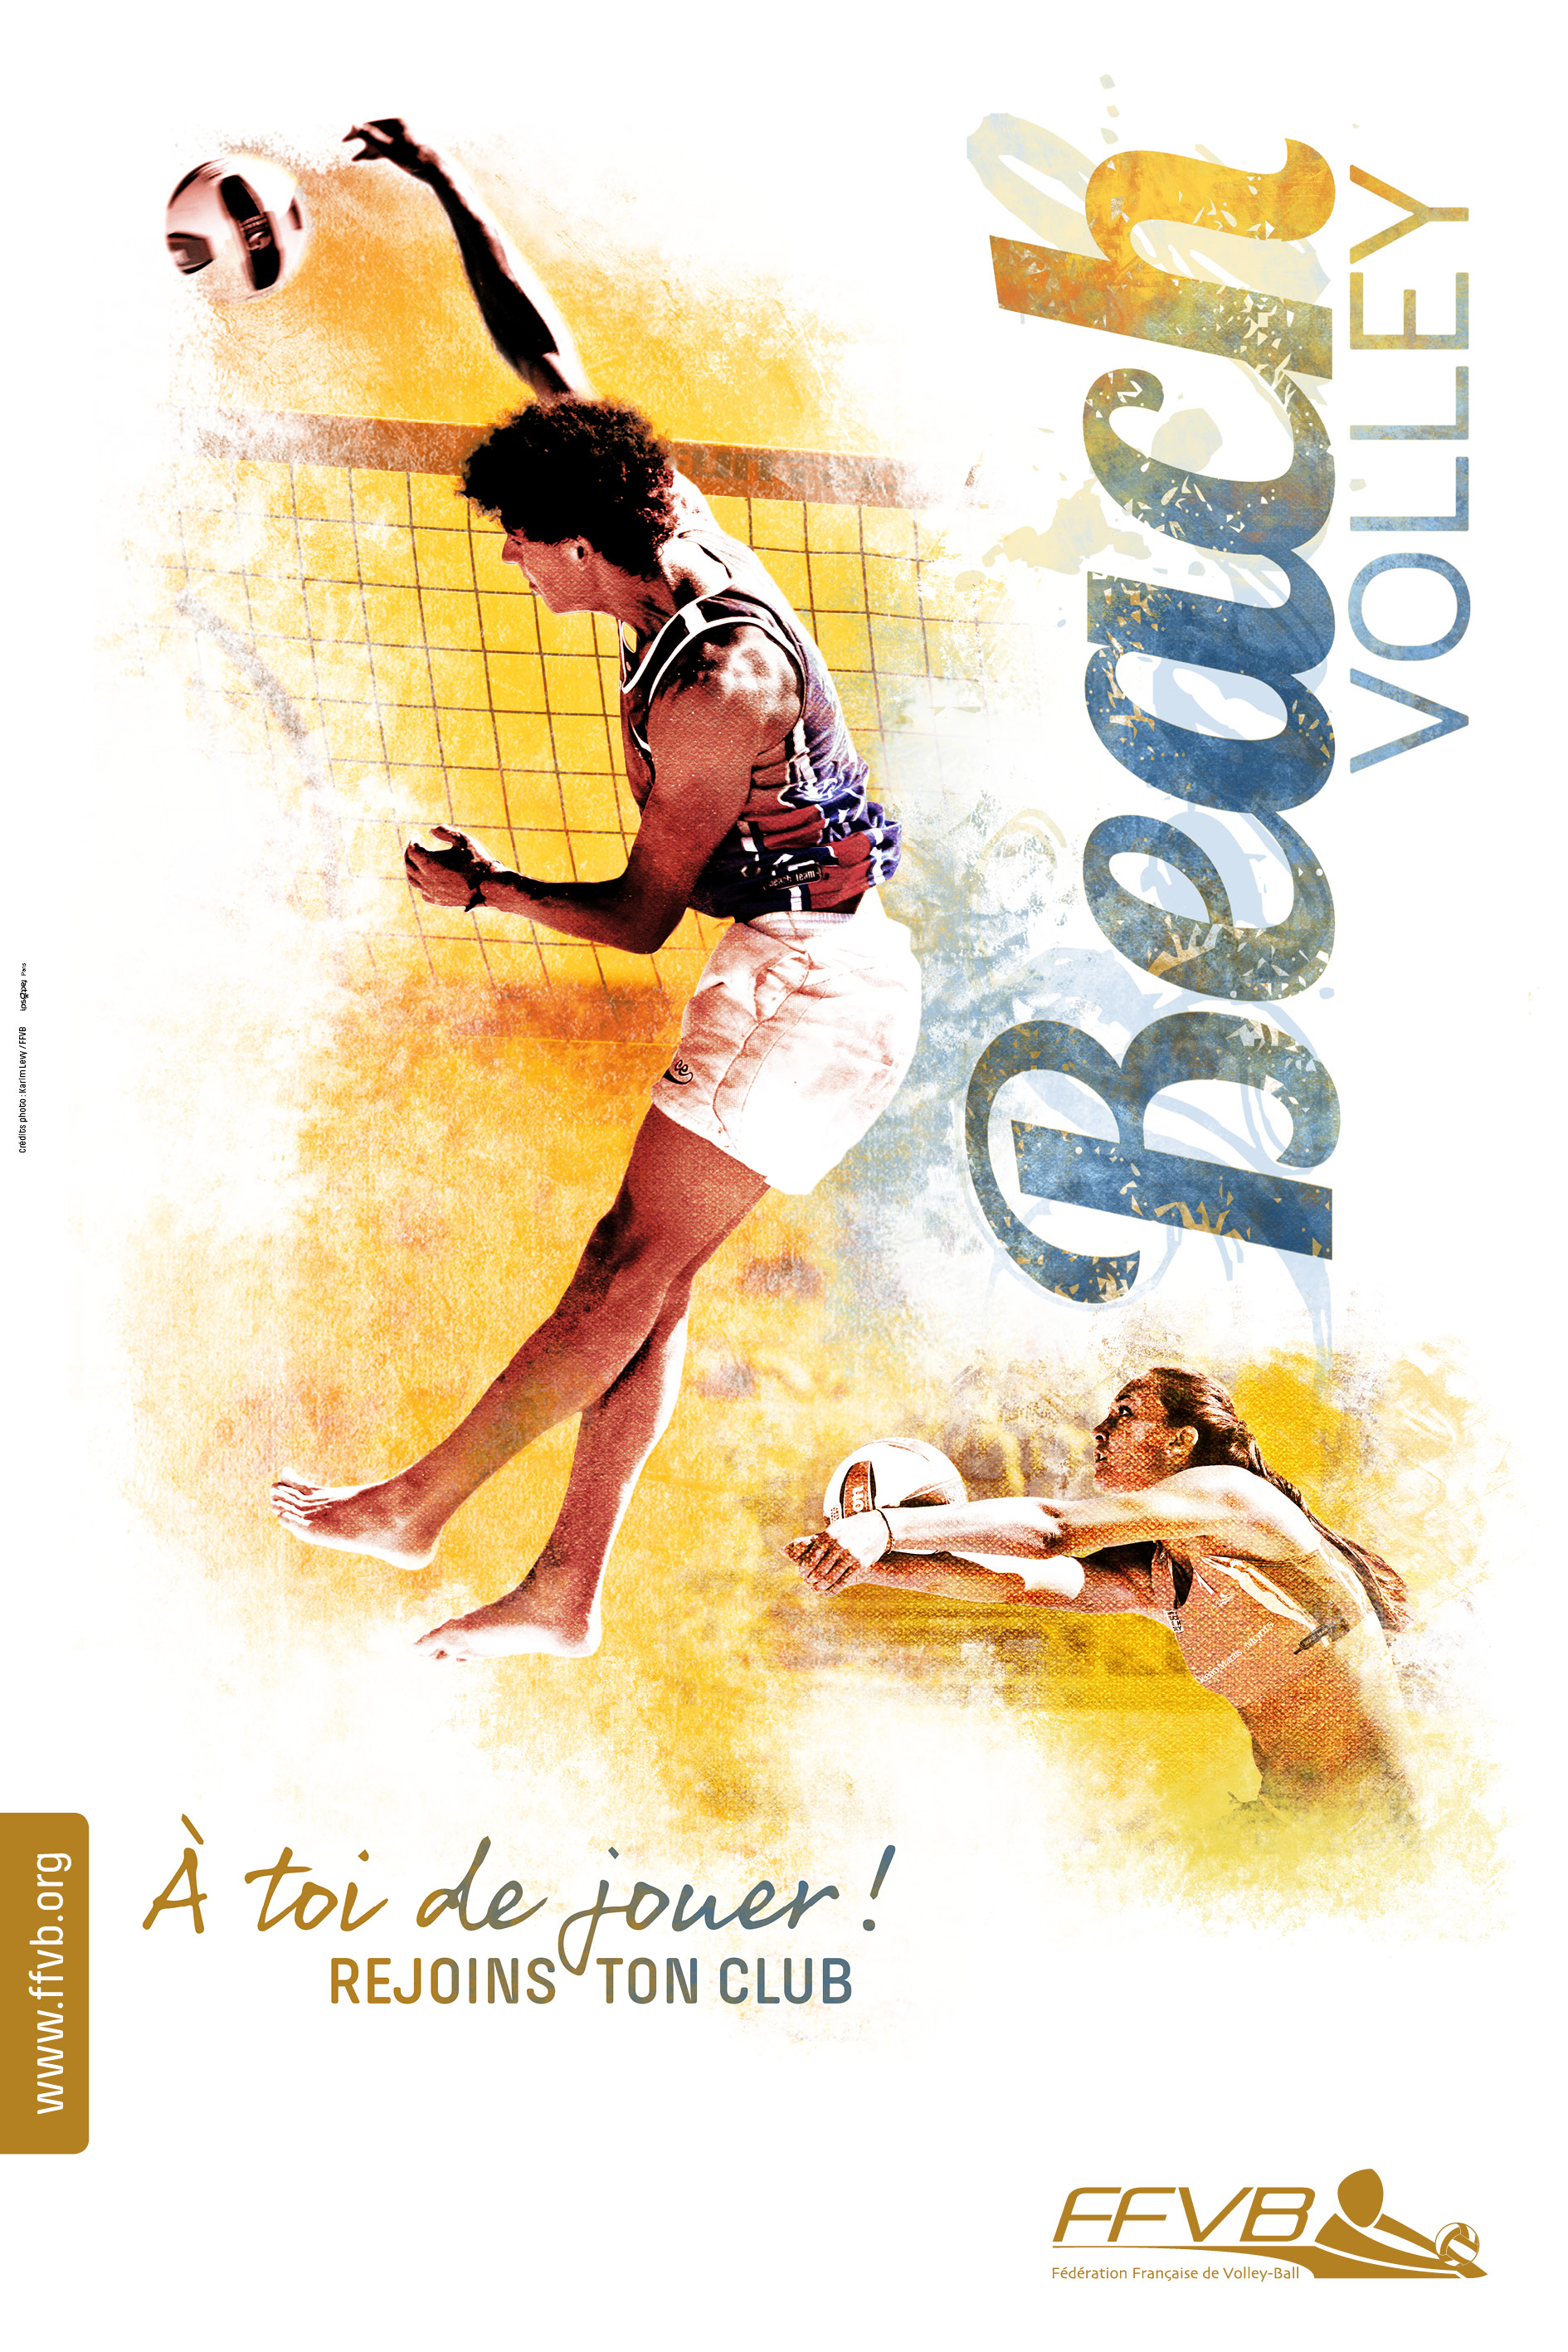 FFVolley-Campagne affiches rentrée clubs beach